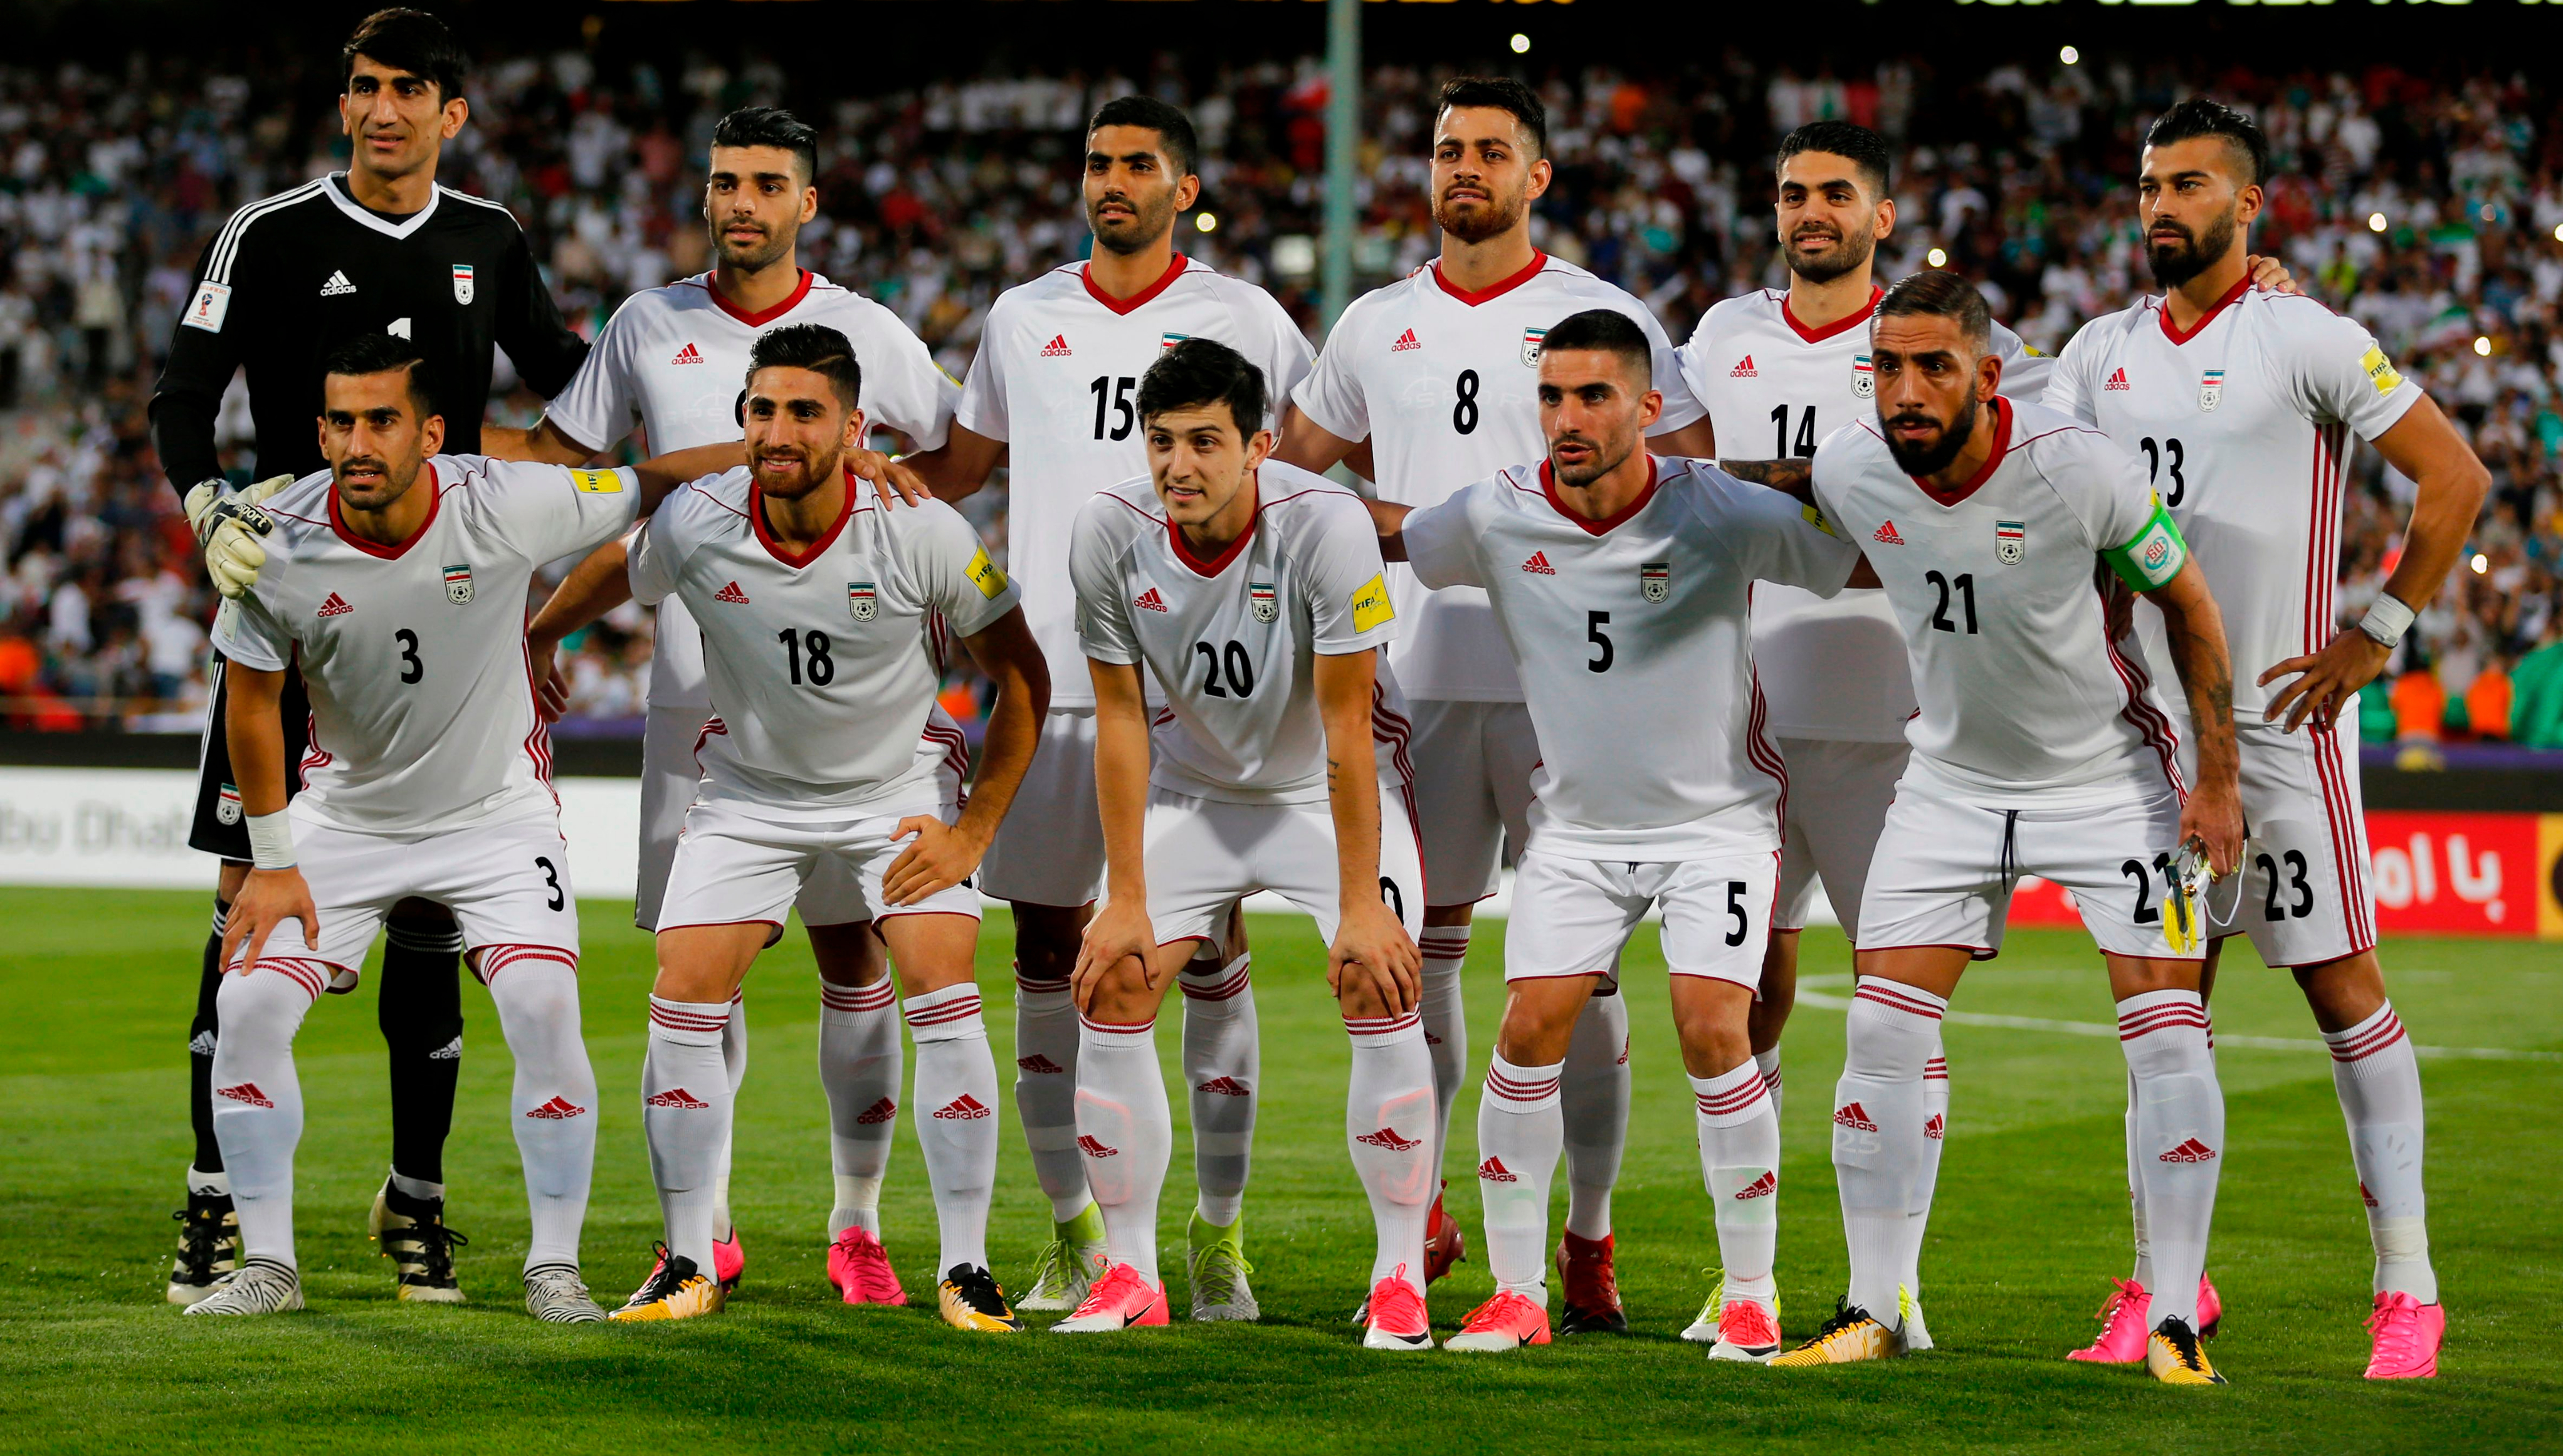 2ee07b0f0 Iran World Cup 2018 squad and team guide as Sardar Azmoun aims to help  Persian princes topple the kings